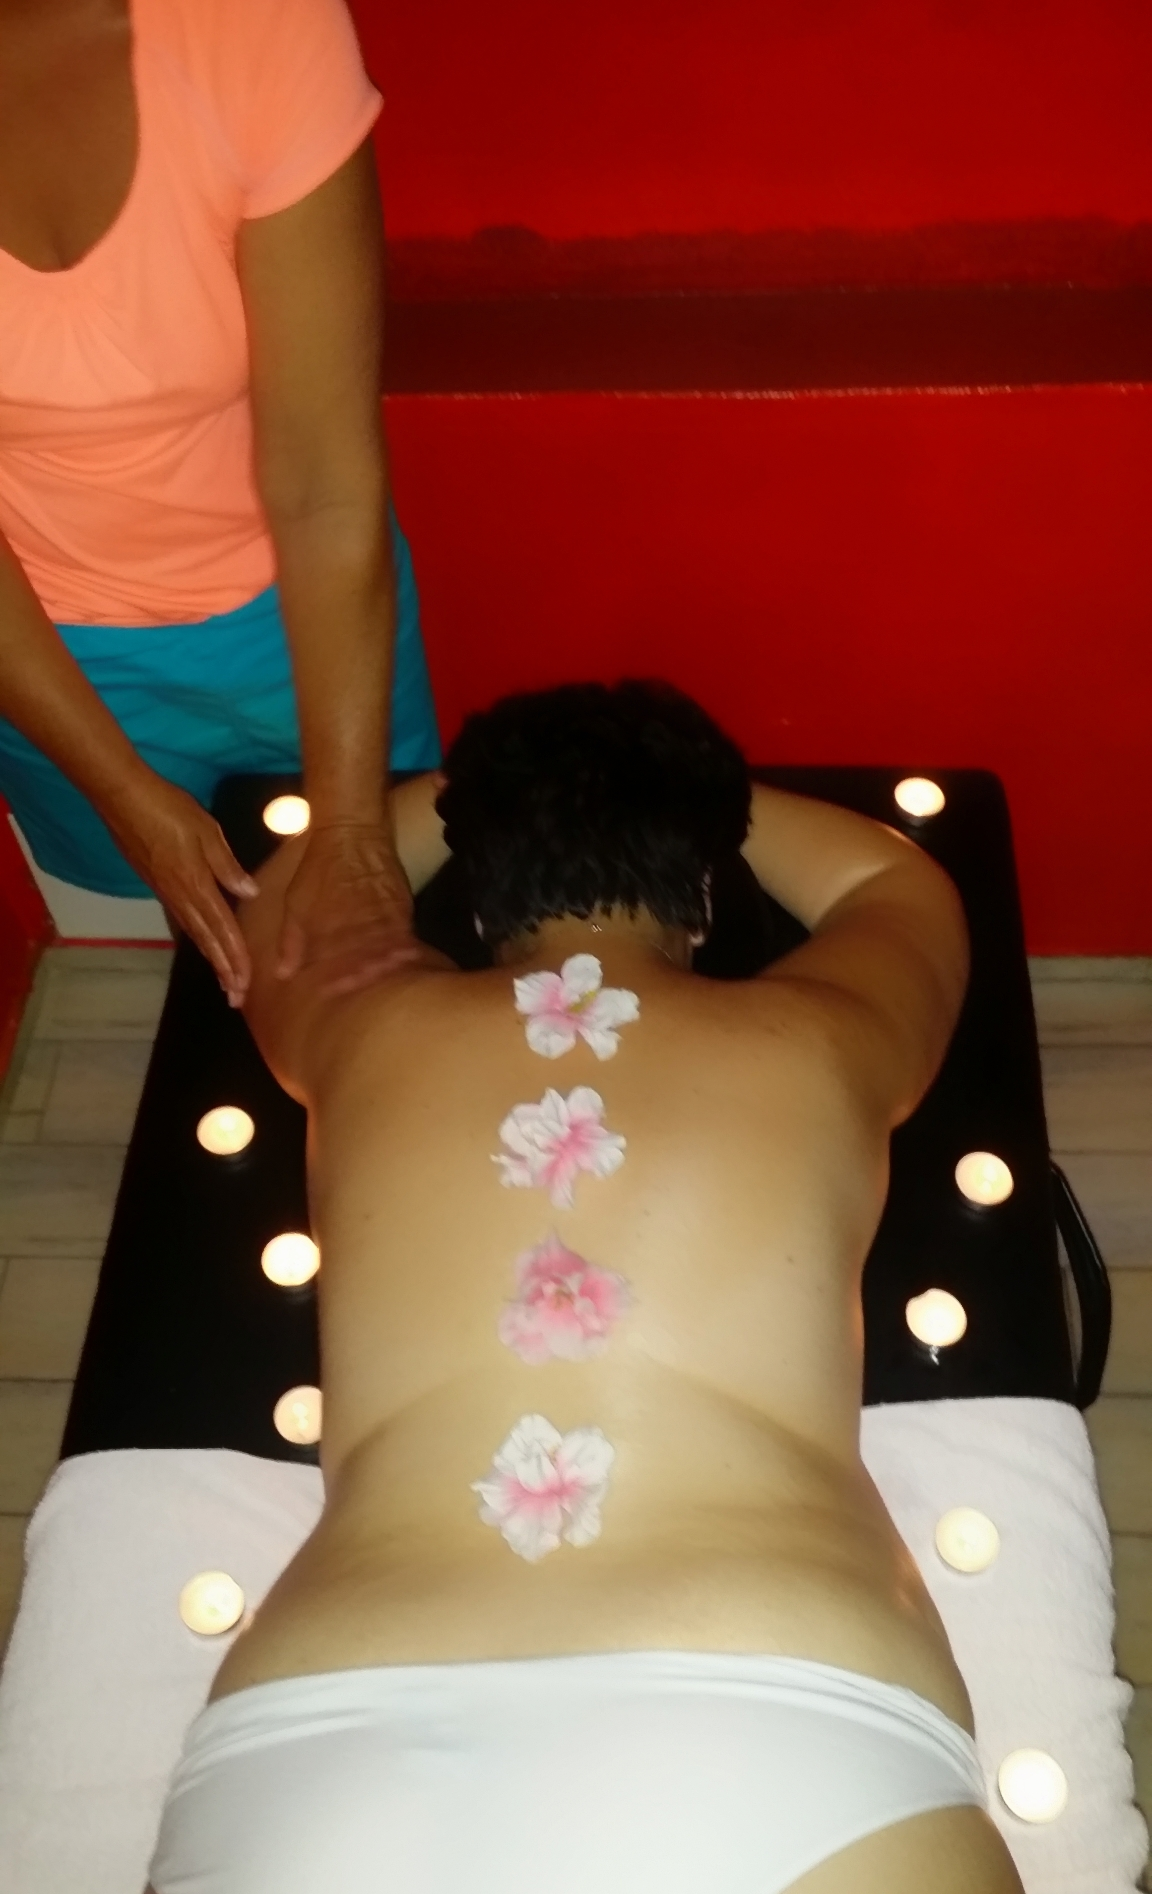 Sexmassage fur paare